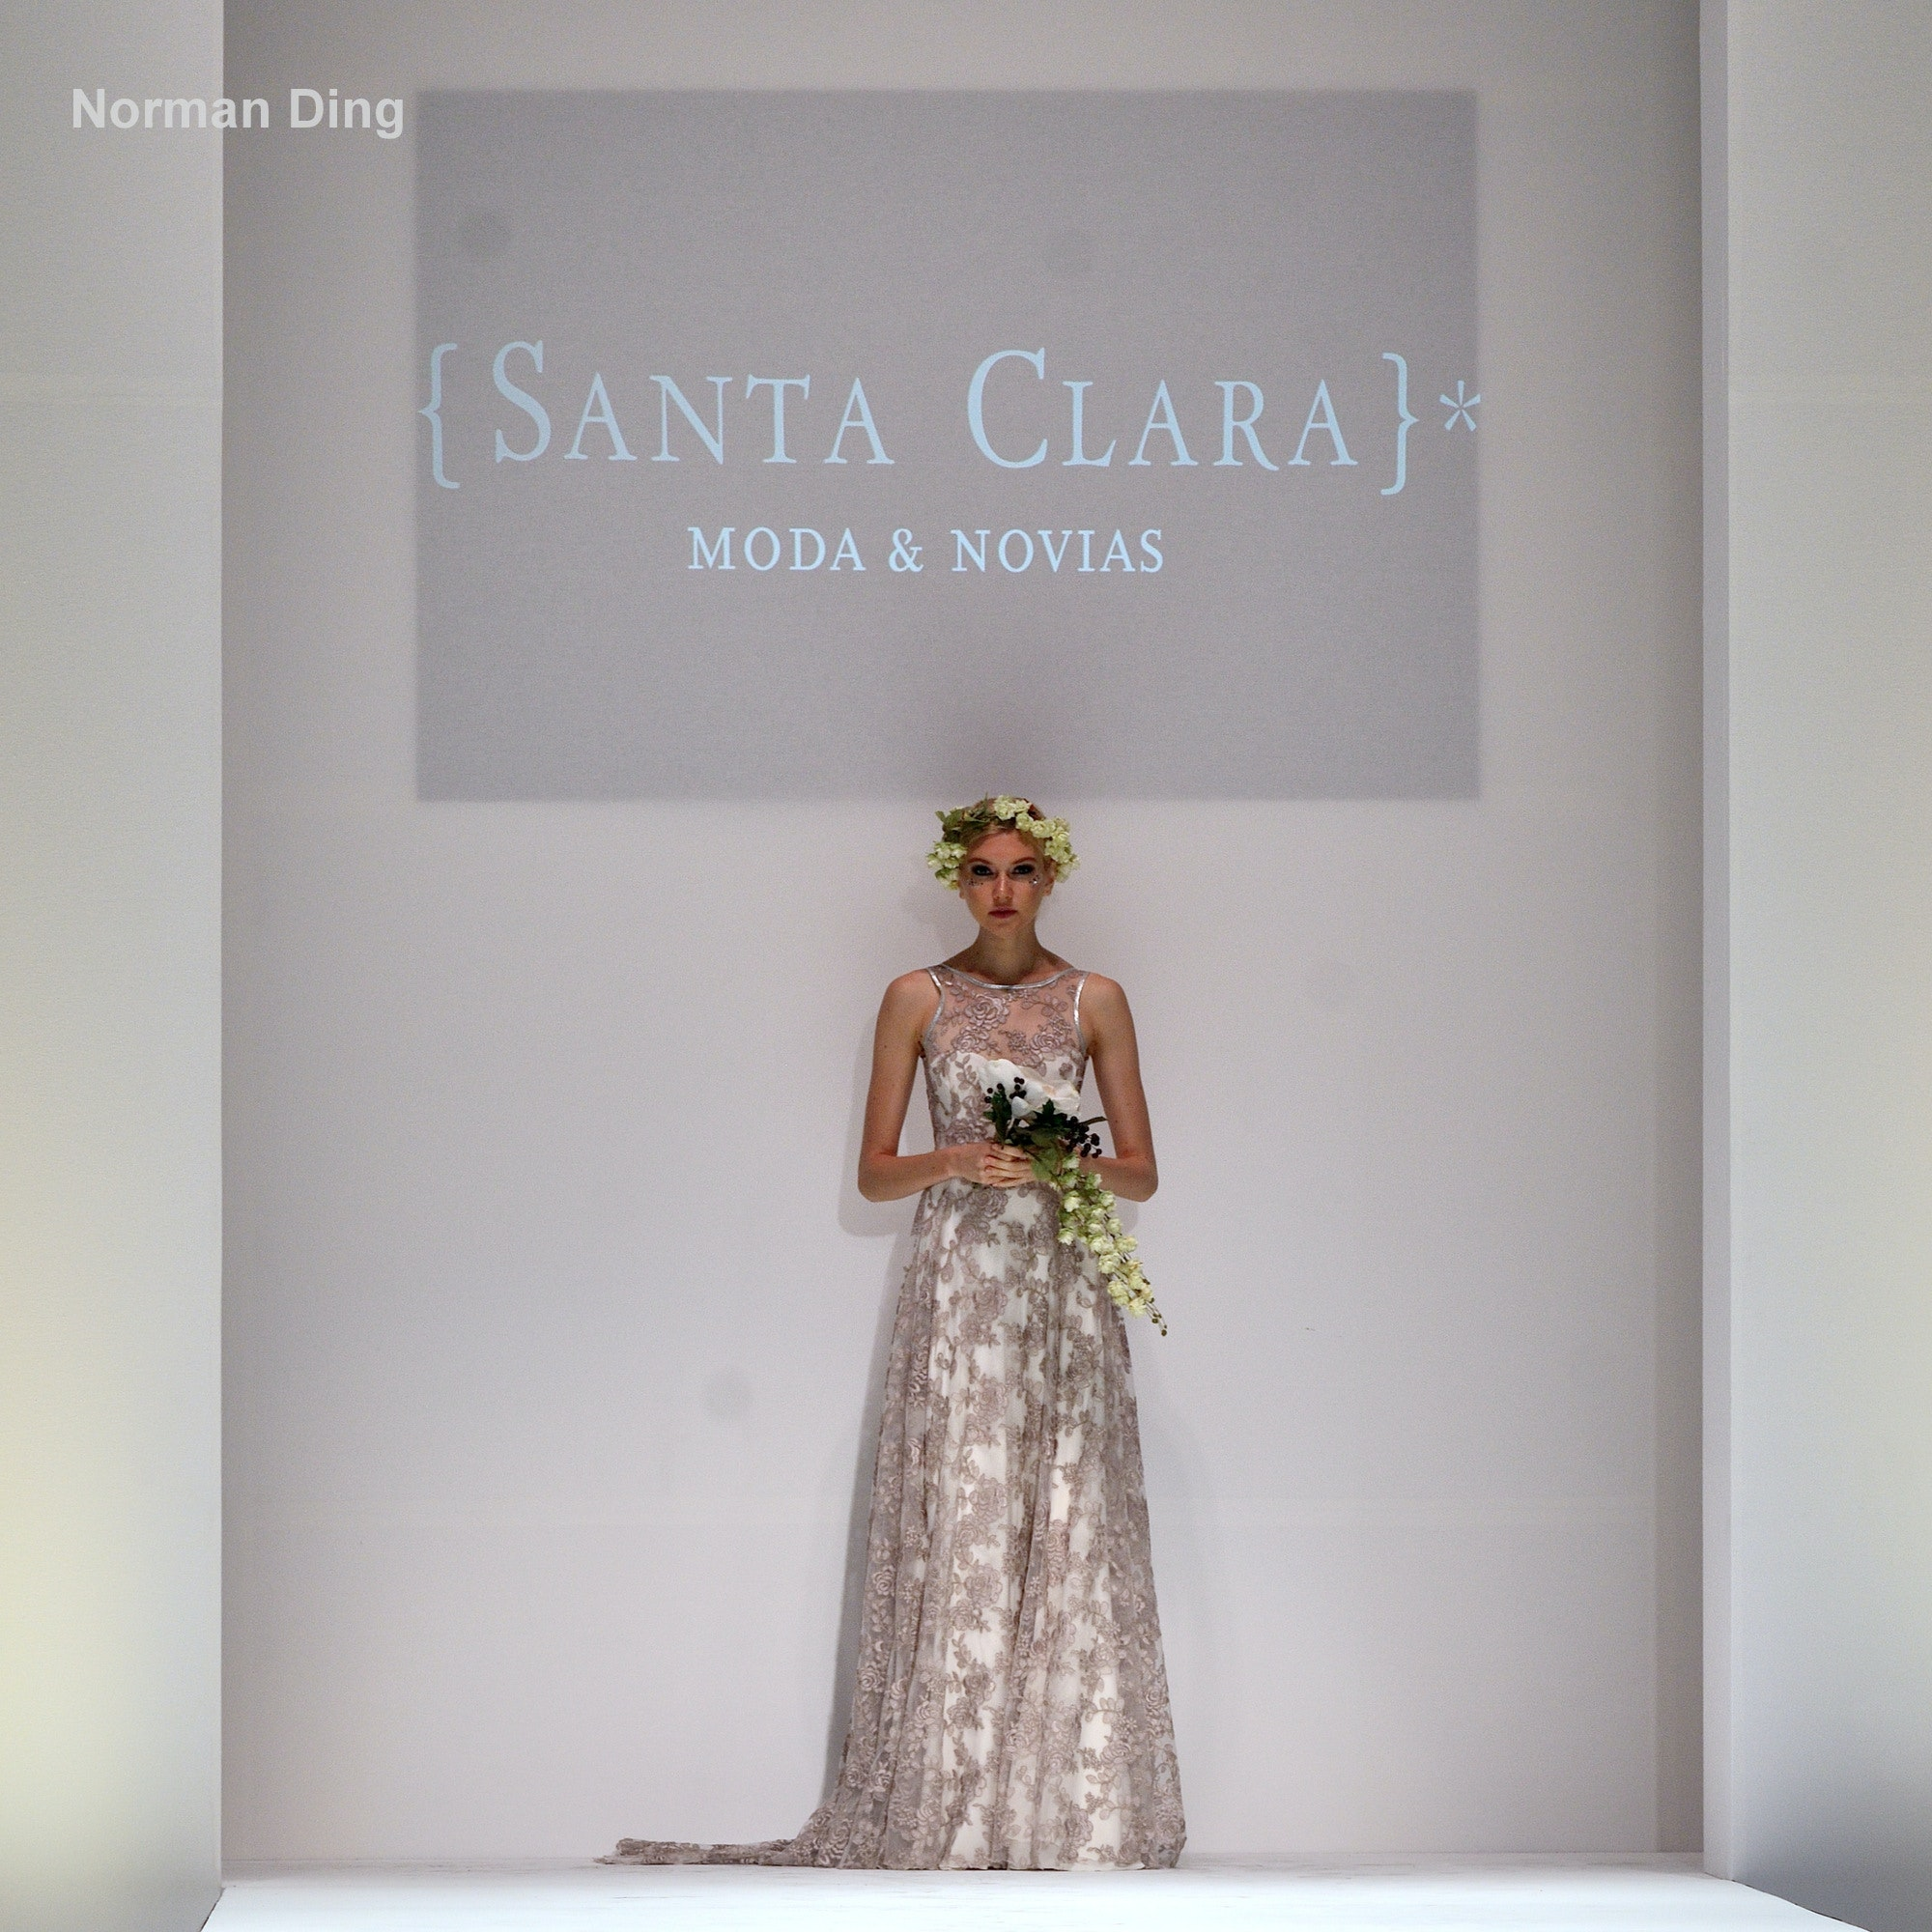 Santa Clara at Style Fashion Week during NYFW 2016